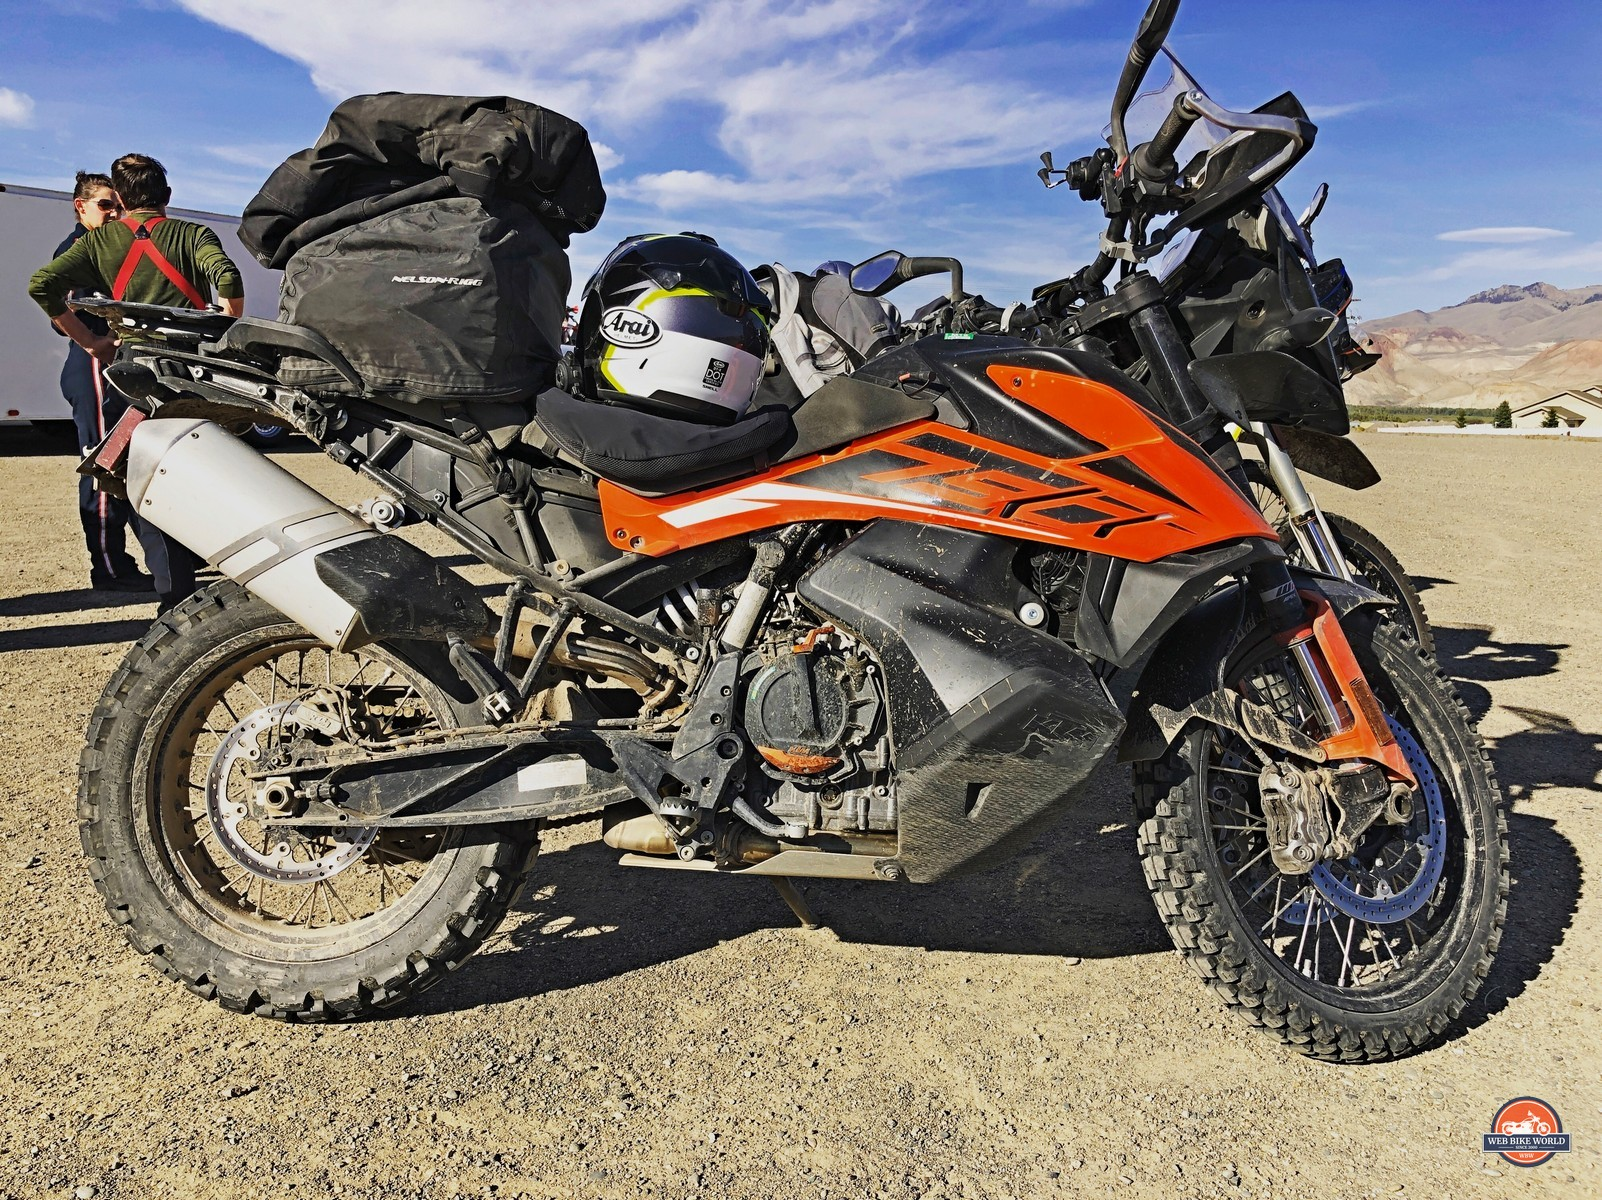 My KTM 790 Adventure at the Klim Cow Tagz Rally 2019.